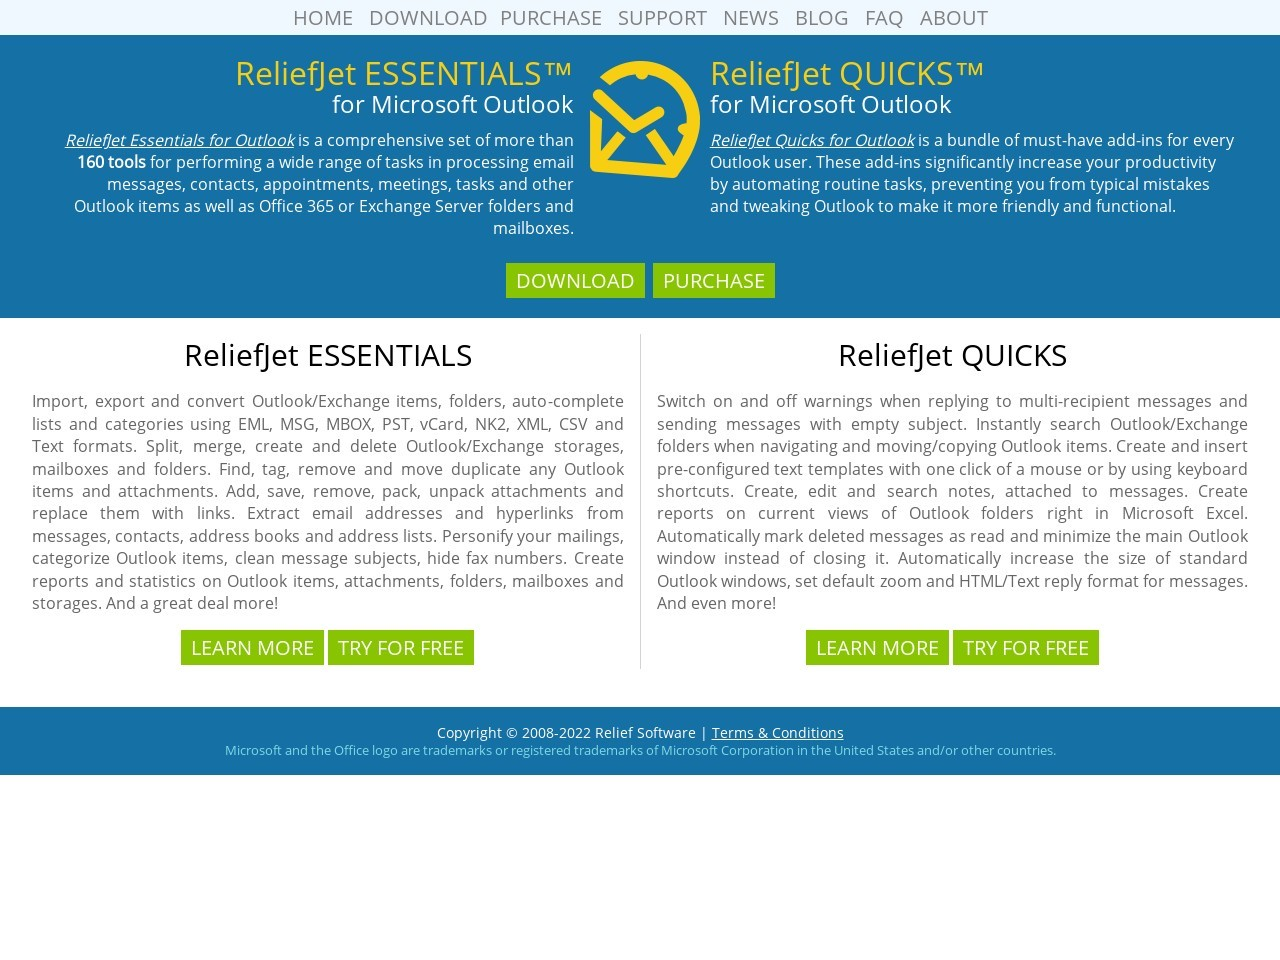 ReliefJet Essentials, ReliefJet Quicks